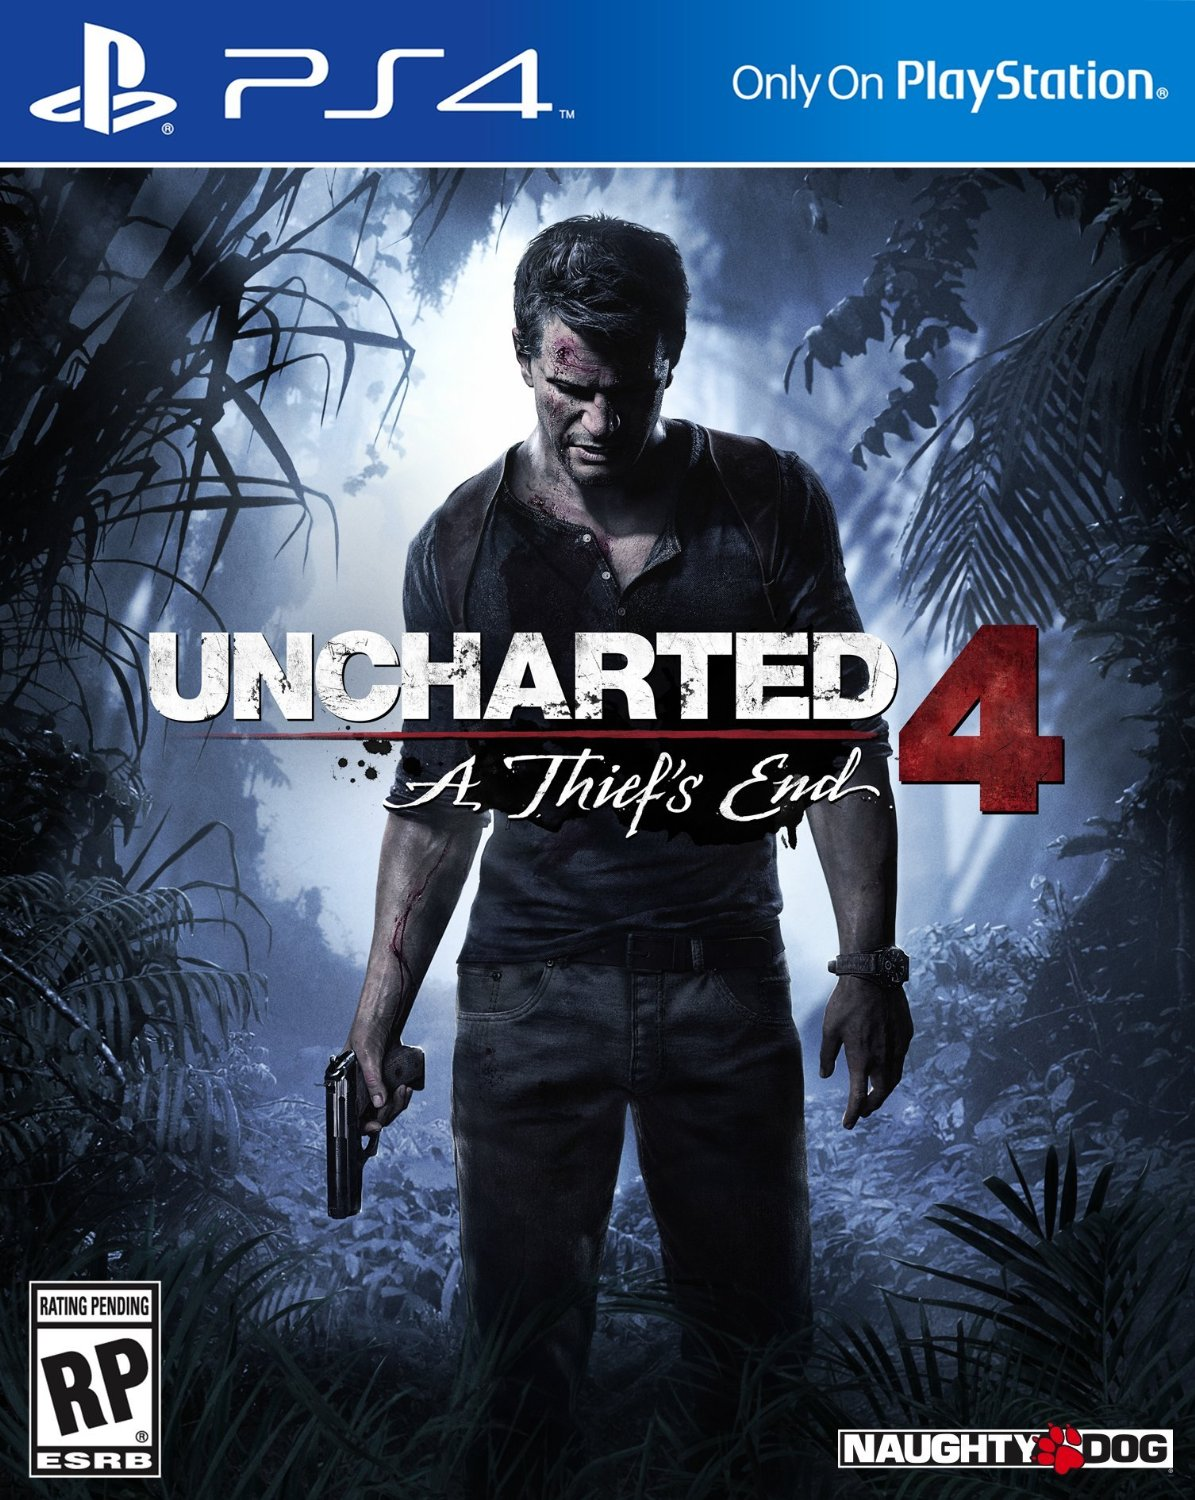 Unchartered 4: A Thief's End